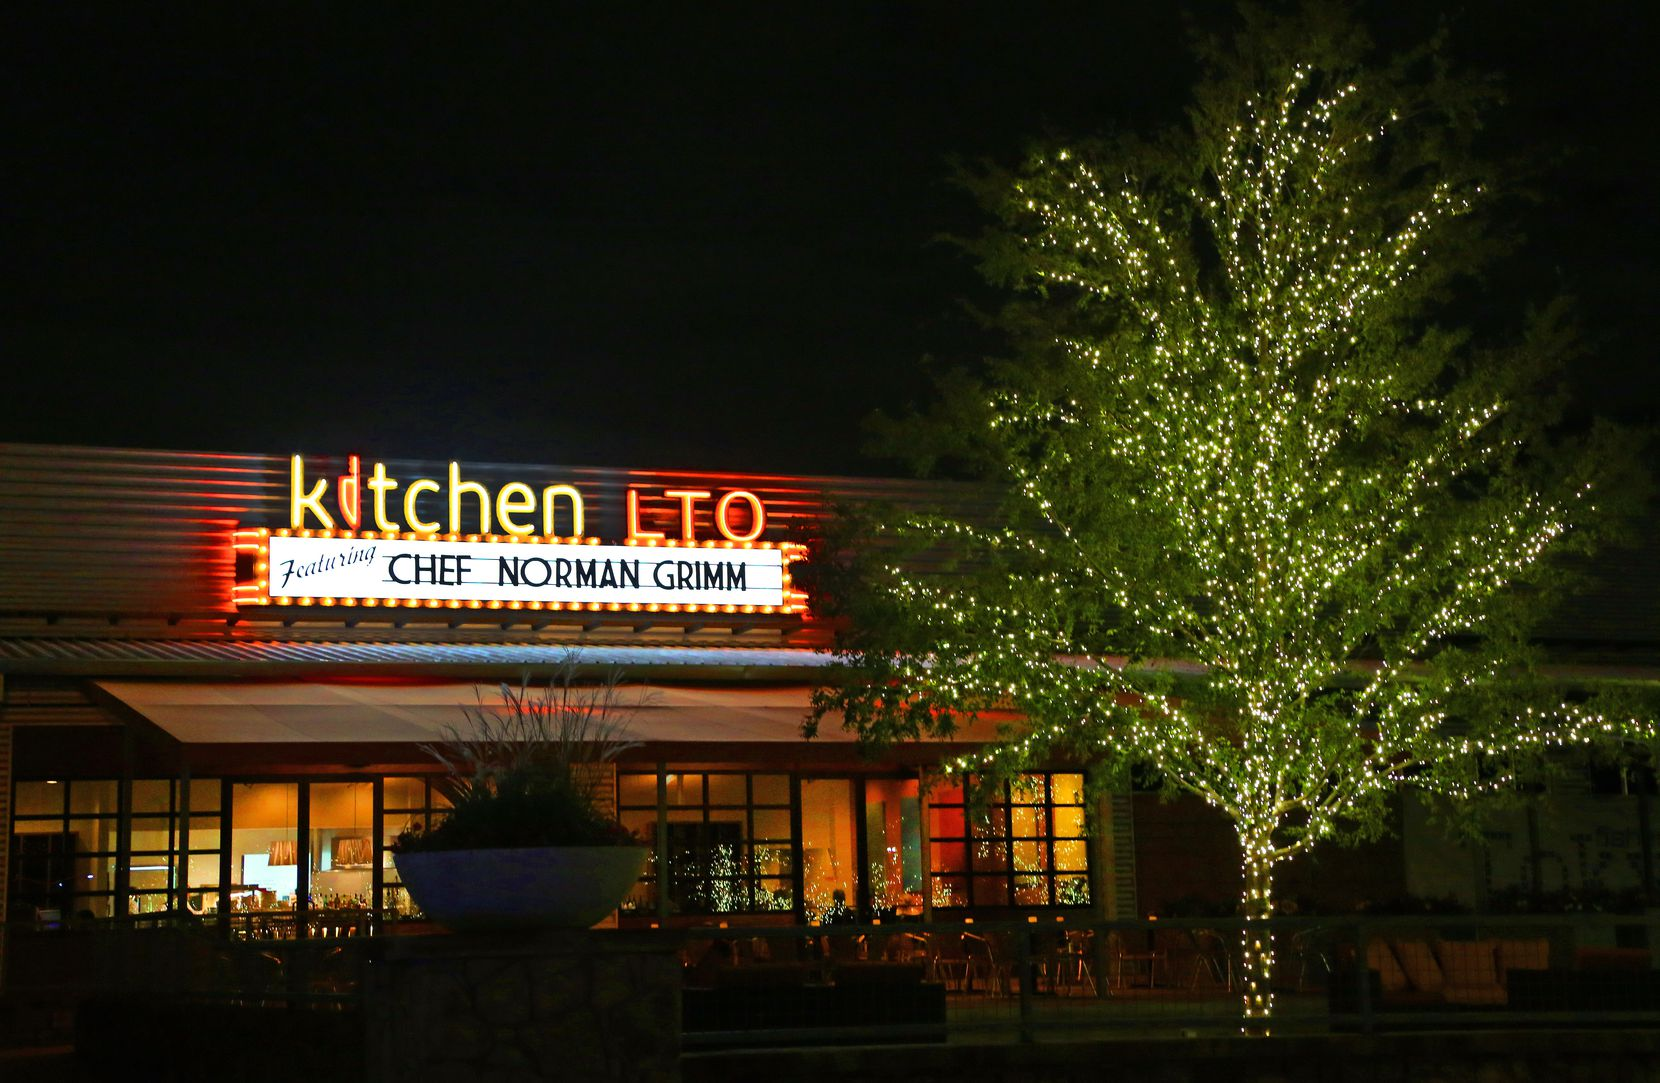 Kitchen LTO rotated chefs every few months. That was the concept: new menu, new chefs, to keep options fresh for the fickle Dallas diner. In October 2013, Norman Grimm was the top toque.